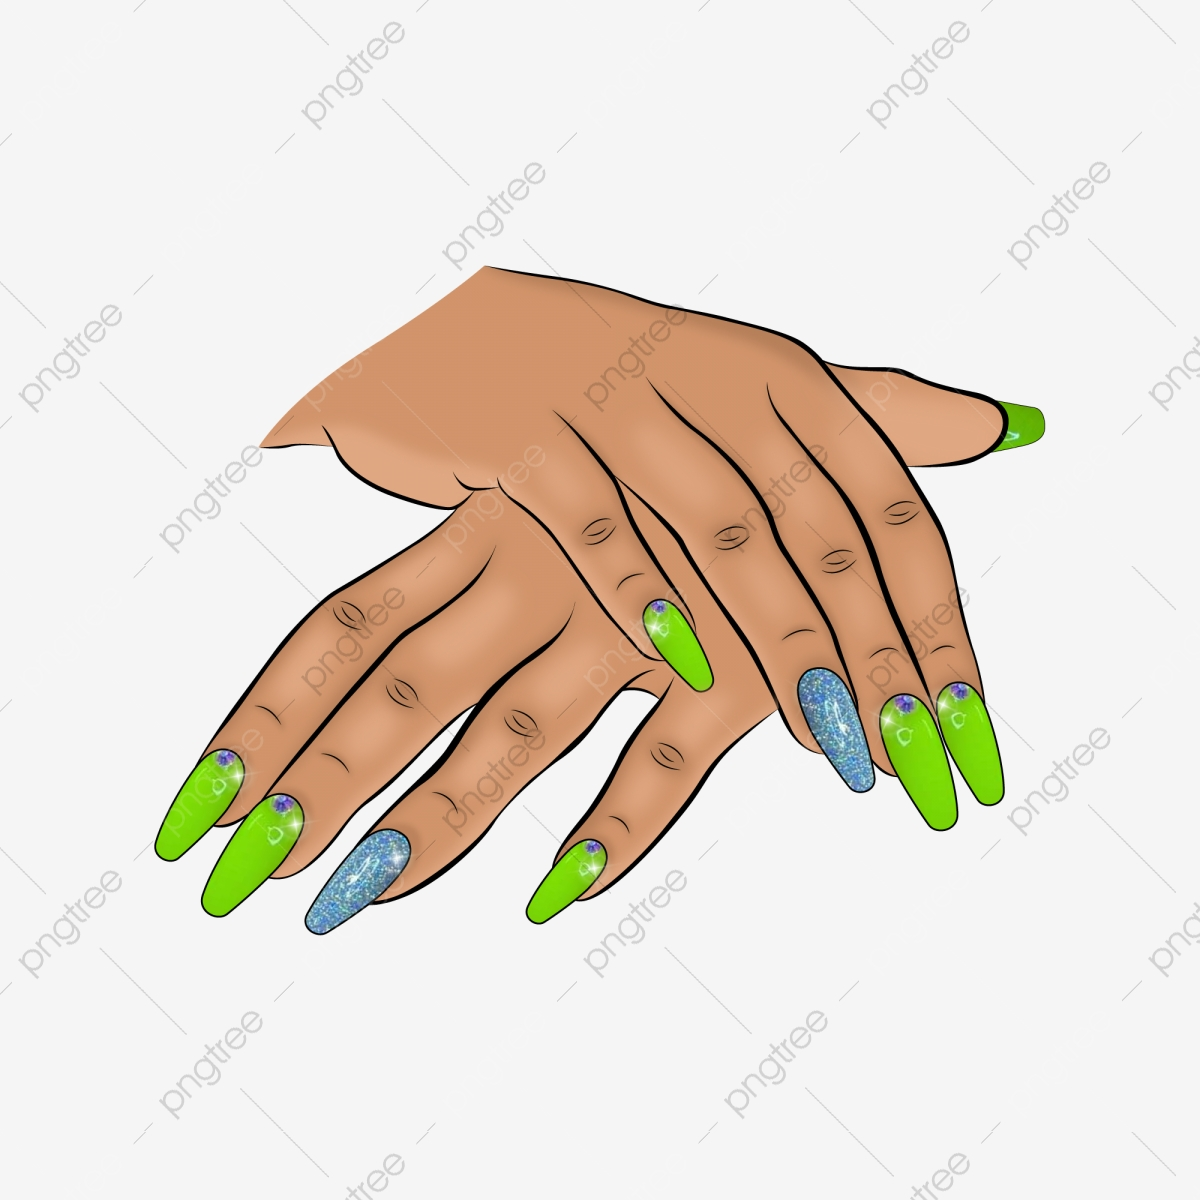 Nail Hand Png Images Vector And Psd Files Free Download On Pngtree Pikbest have found 849 great nails images for free. https pngtree com freepng black women hand 5545125 html